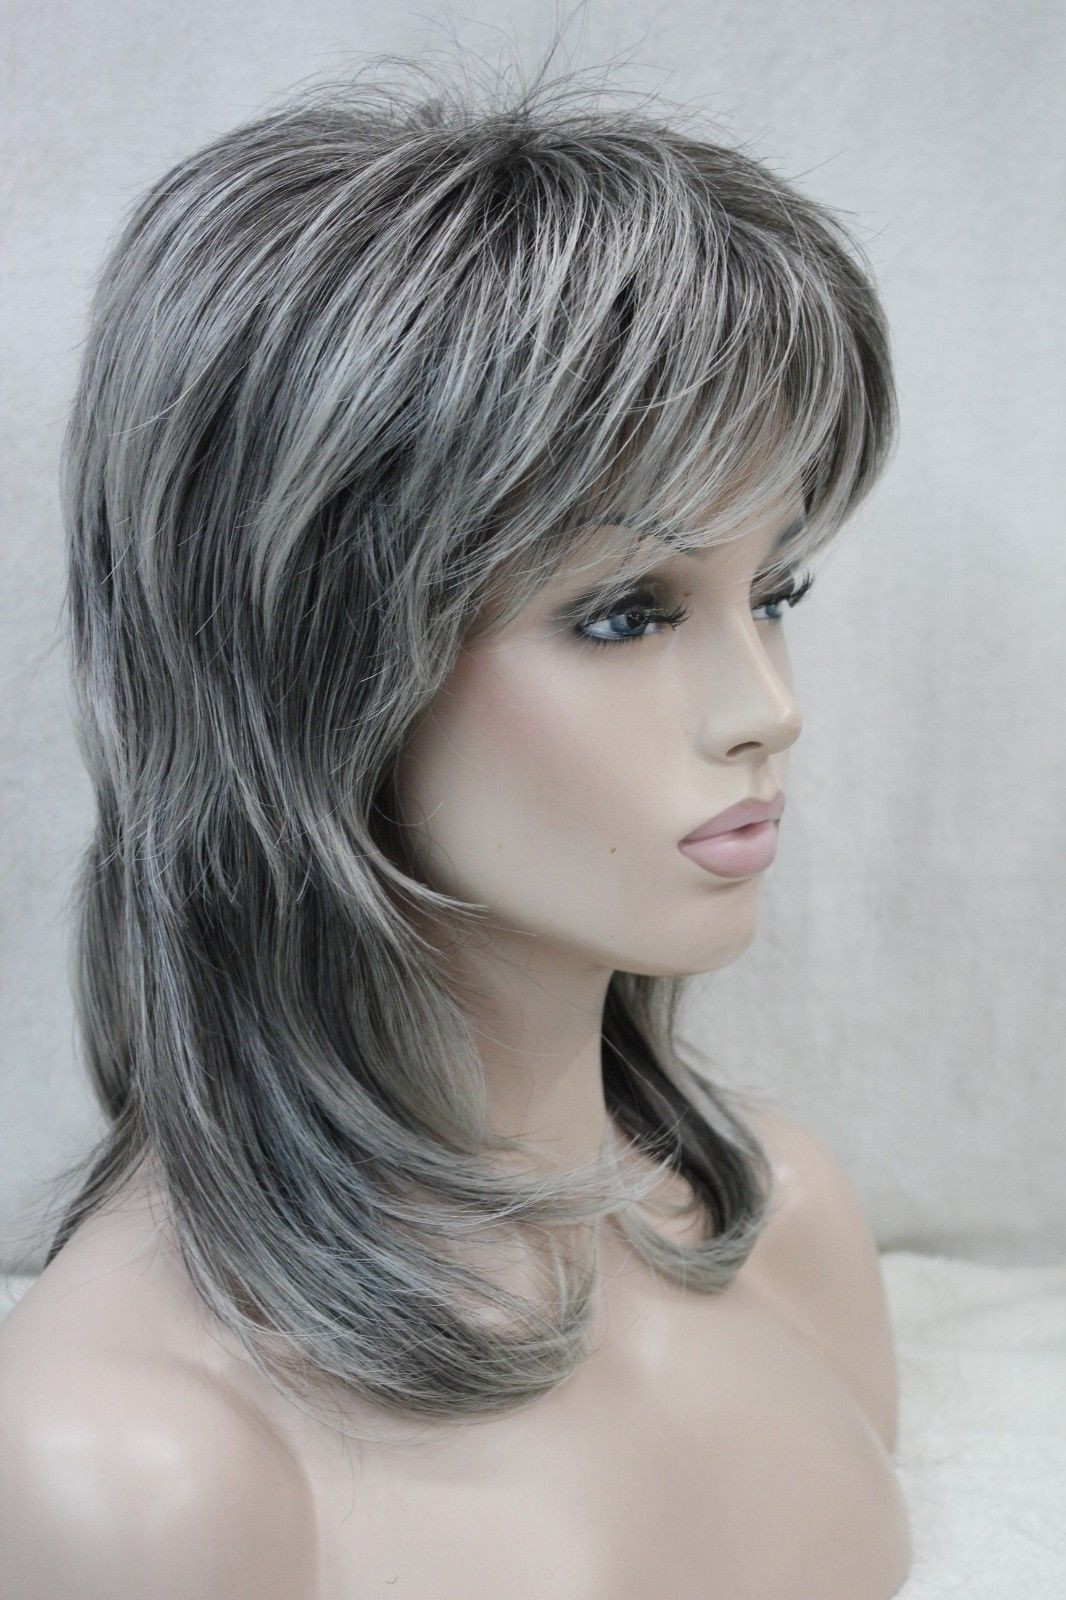 Best ideas about Women'S Shoulder Length Hairstyles . Save or Pin New women s wig medium length grey layered shoulder long Now.